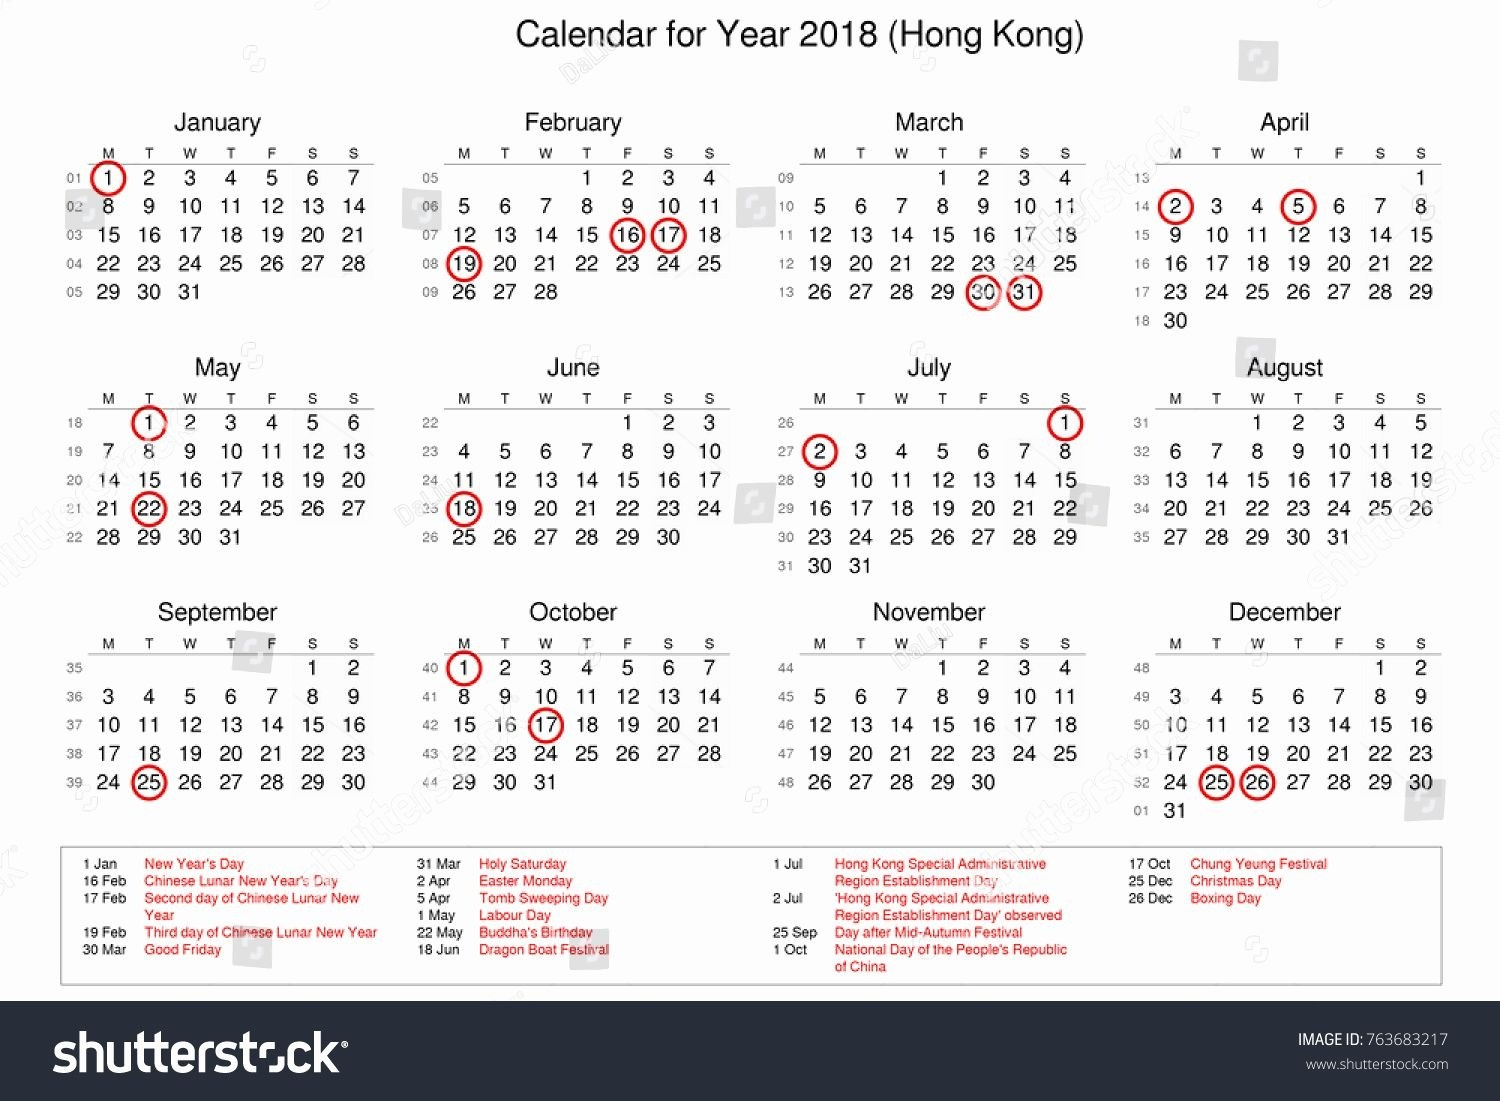 Chinese New Year 2019 Calendar Hong Kong With October Template Etknlik In